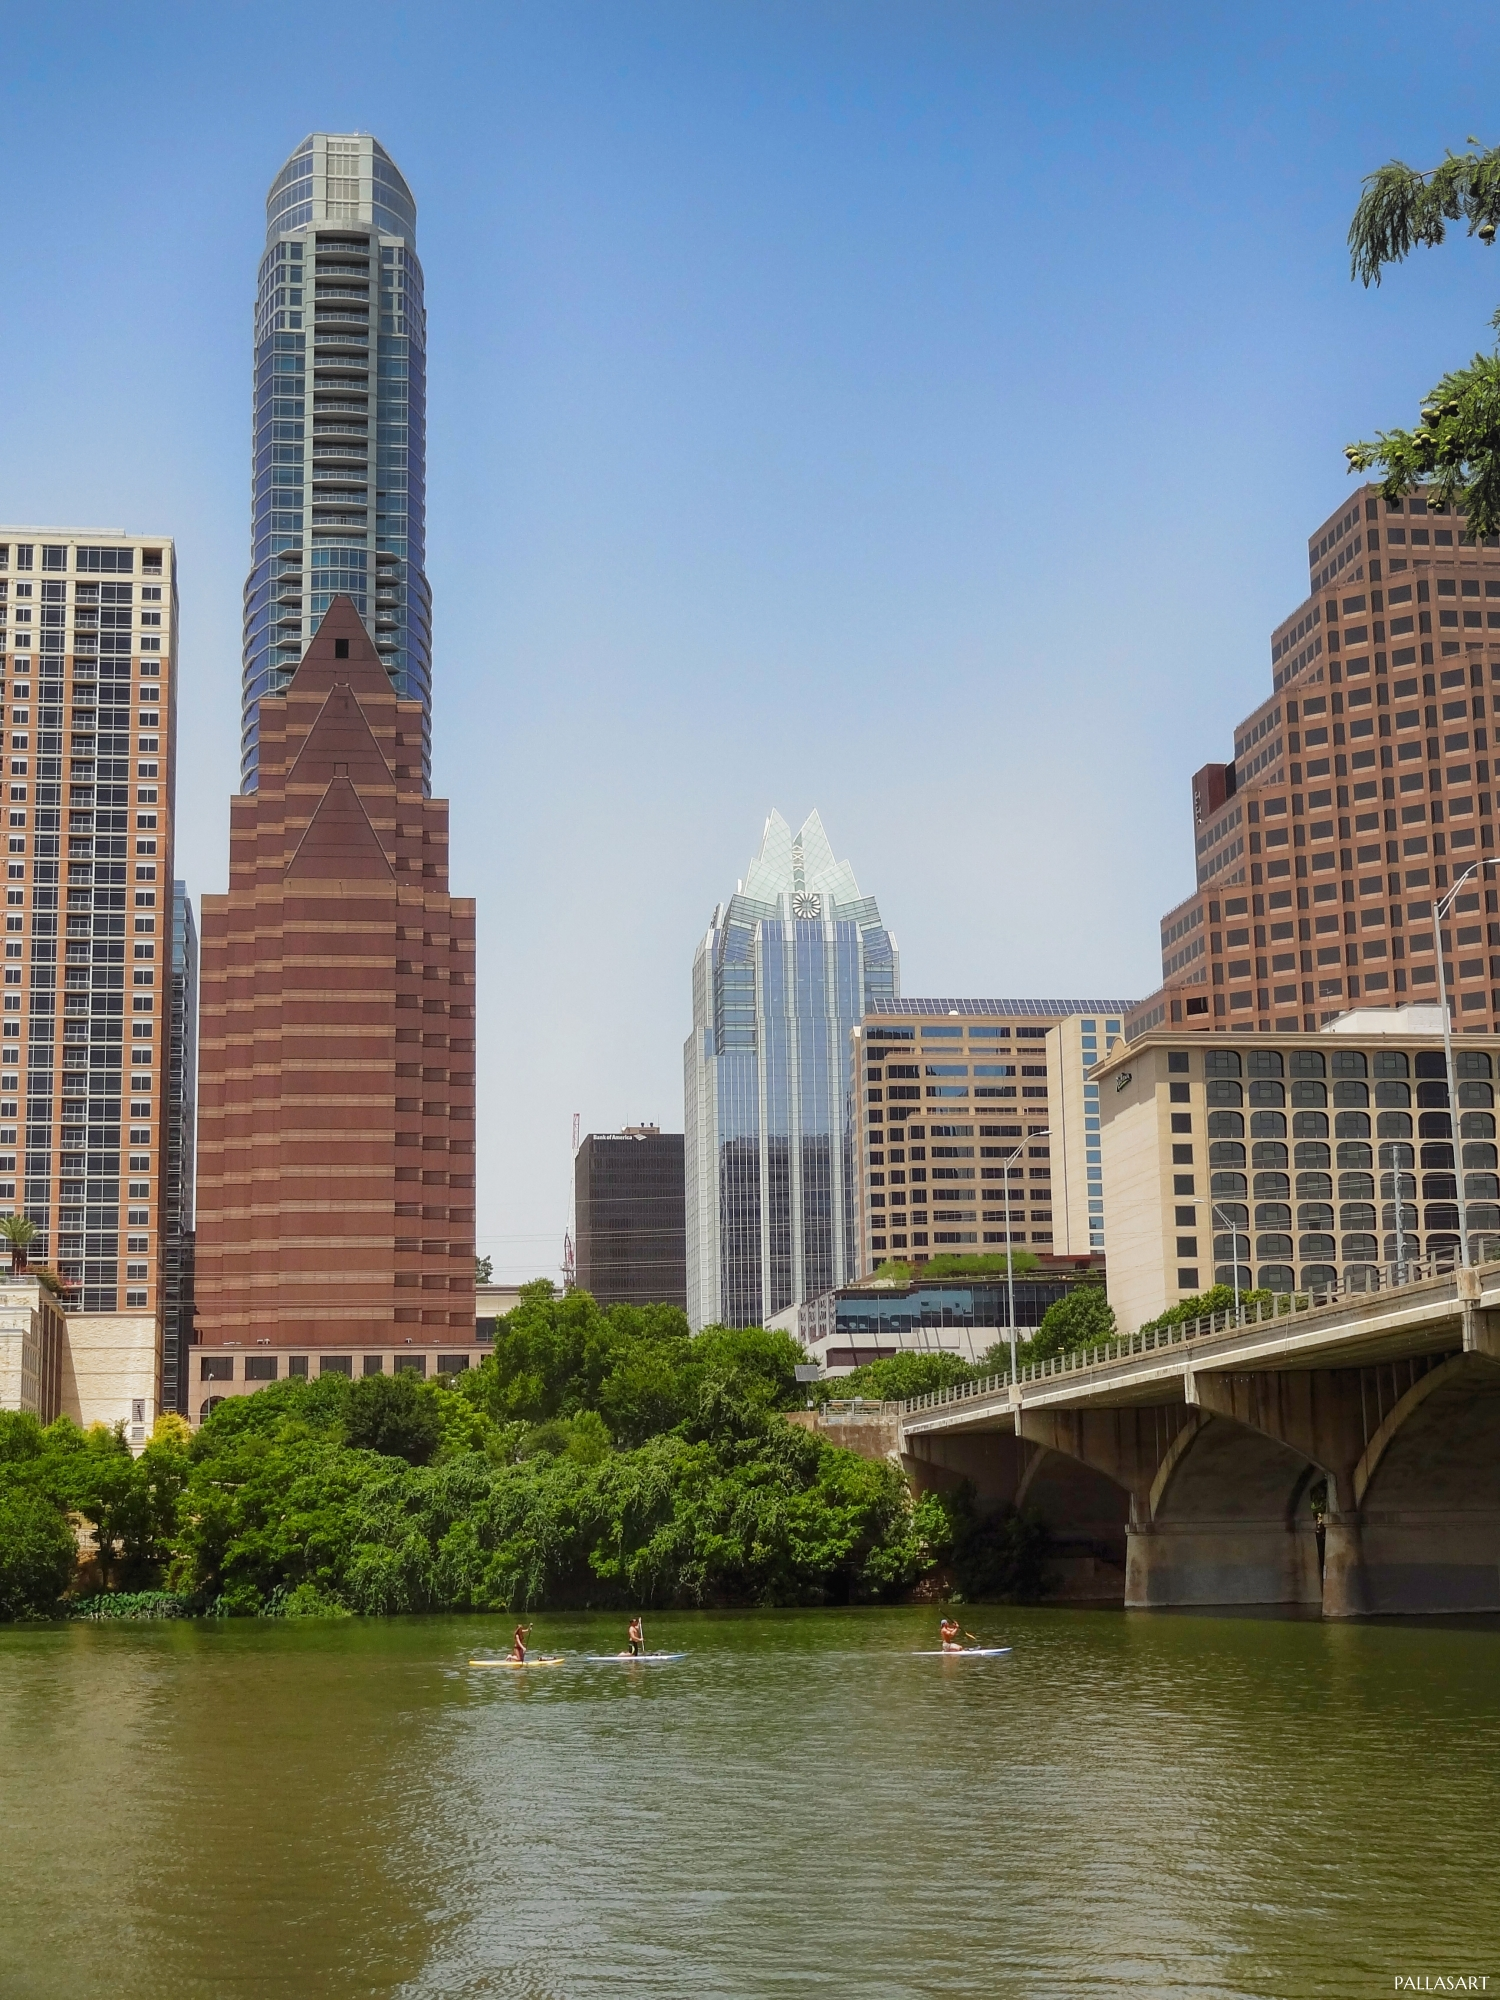 Paddleboarders on Lady Bird Lake